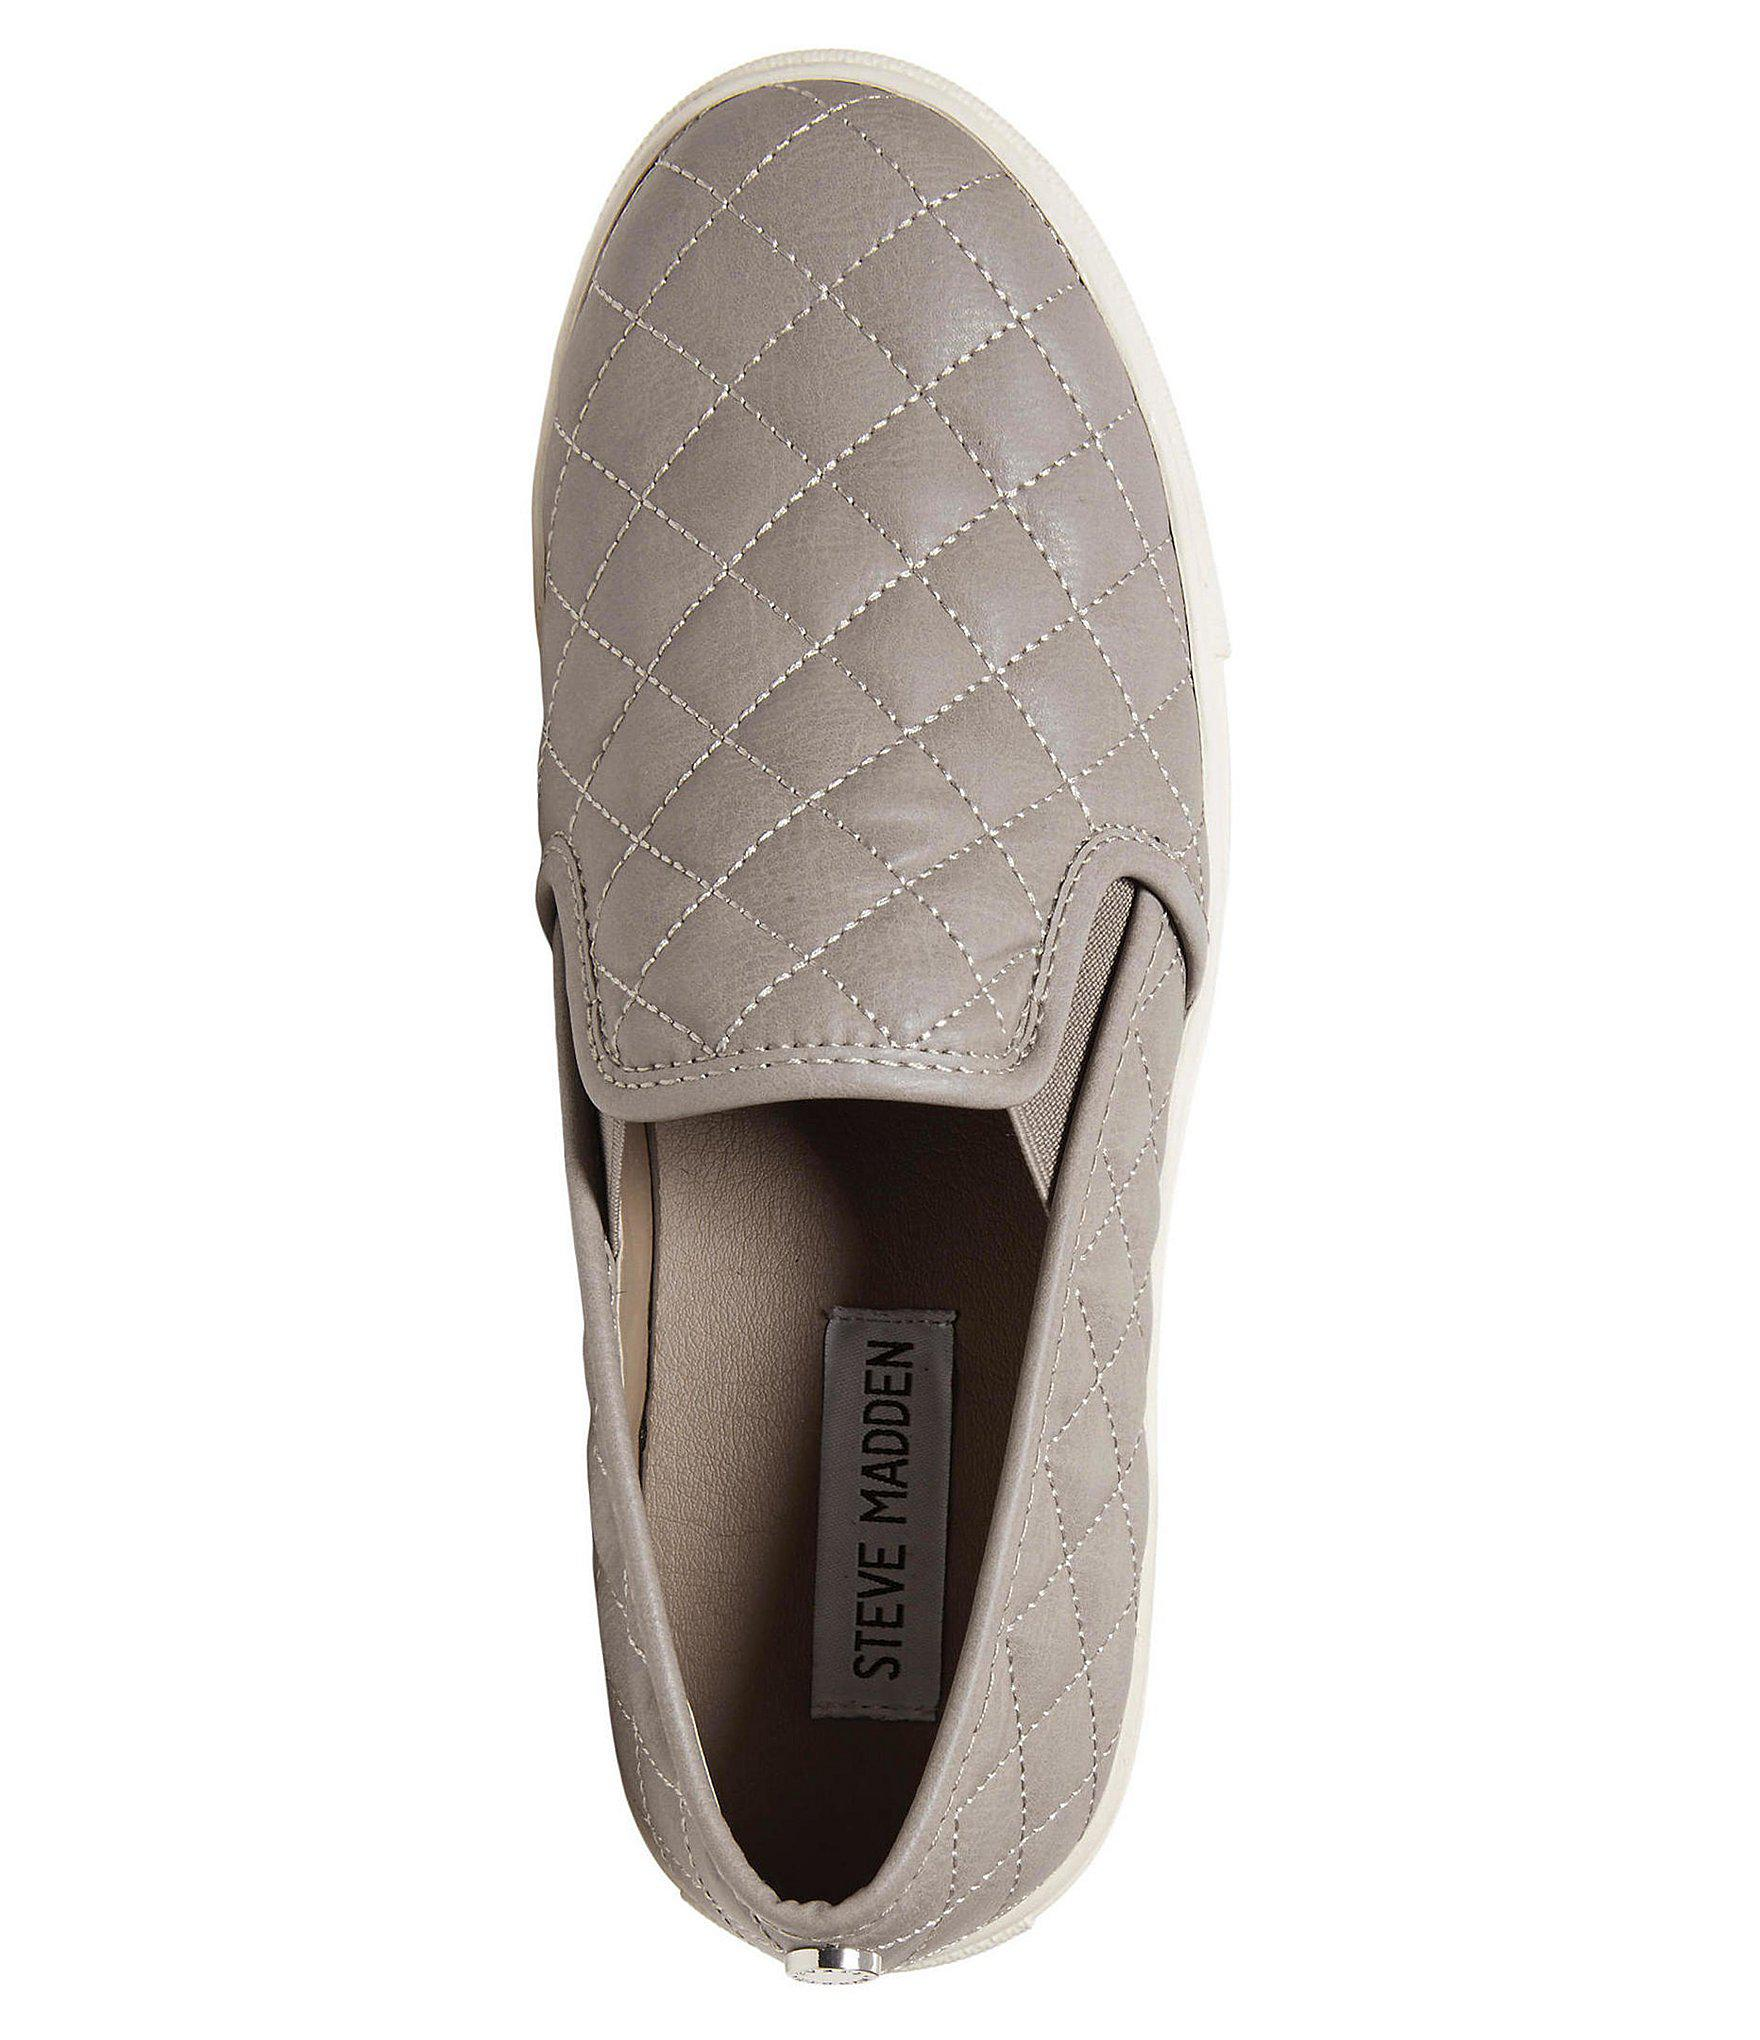 5fc76f51045 Steve Madden - Gray Ecentrcq Quilted Slip On Sneakers - Lyst. View  fullscreen